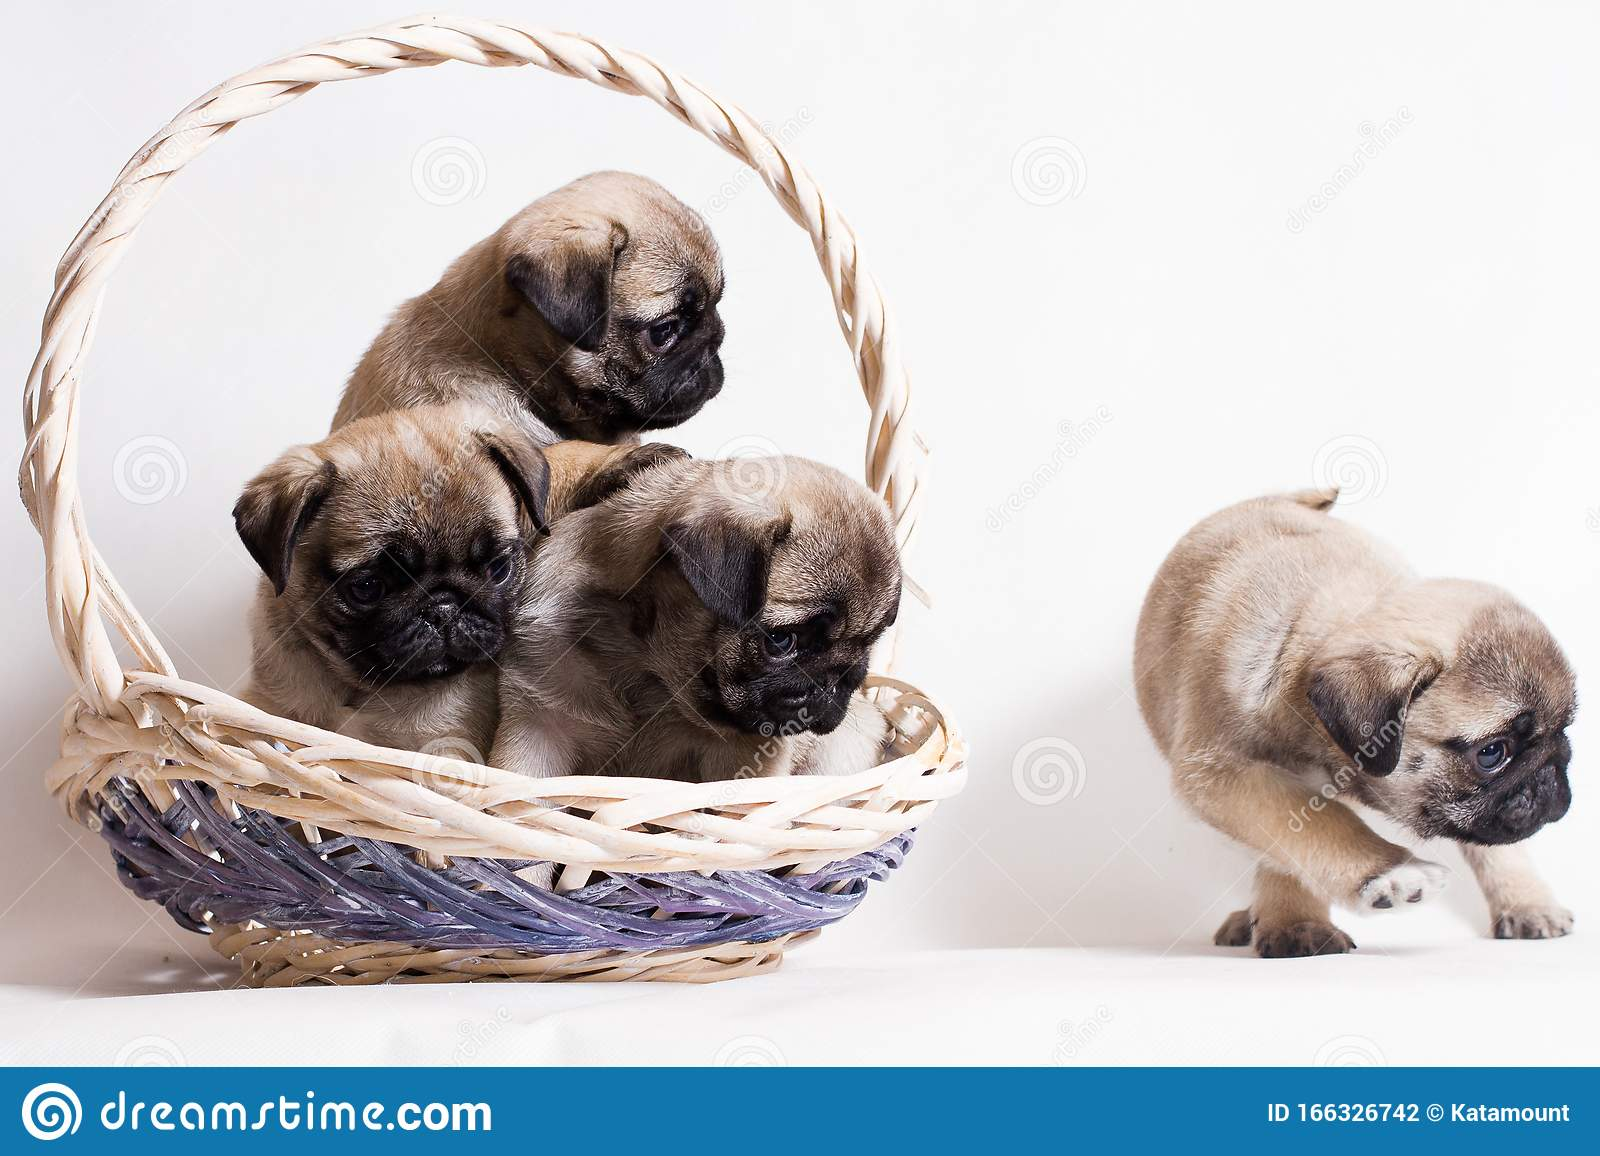 Three Little Fawn Pug Puppies Sit In A Basket And One Runs Away Stock Photo Image Of Branch Basket 166326742